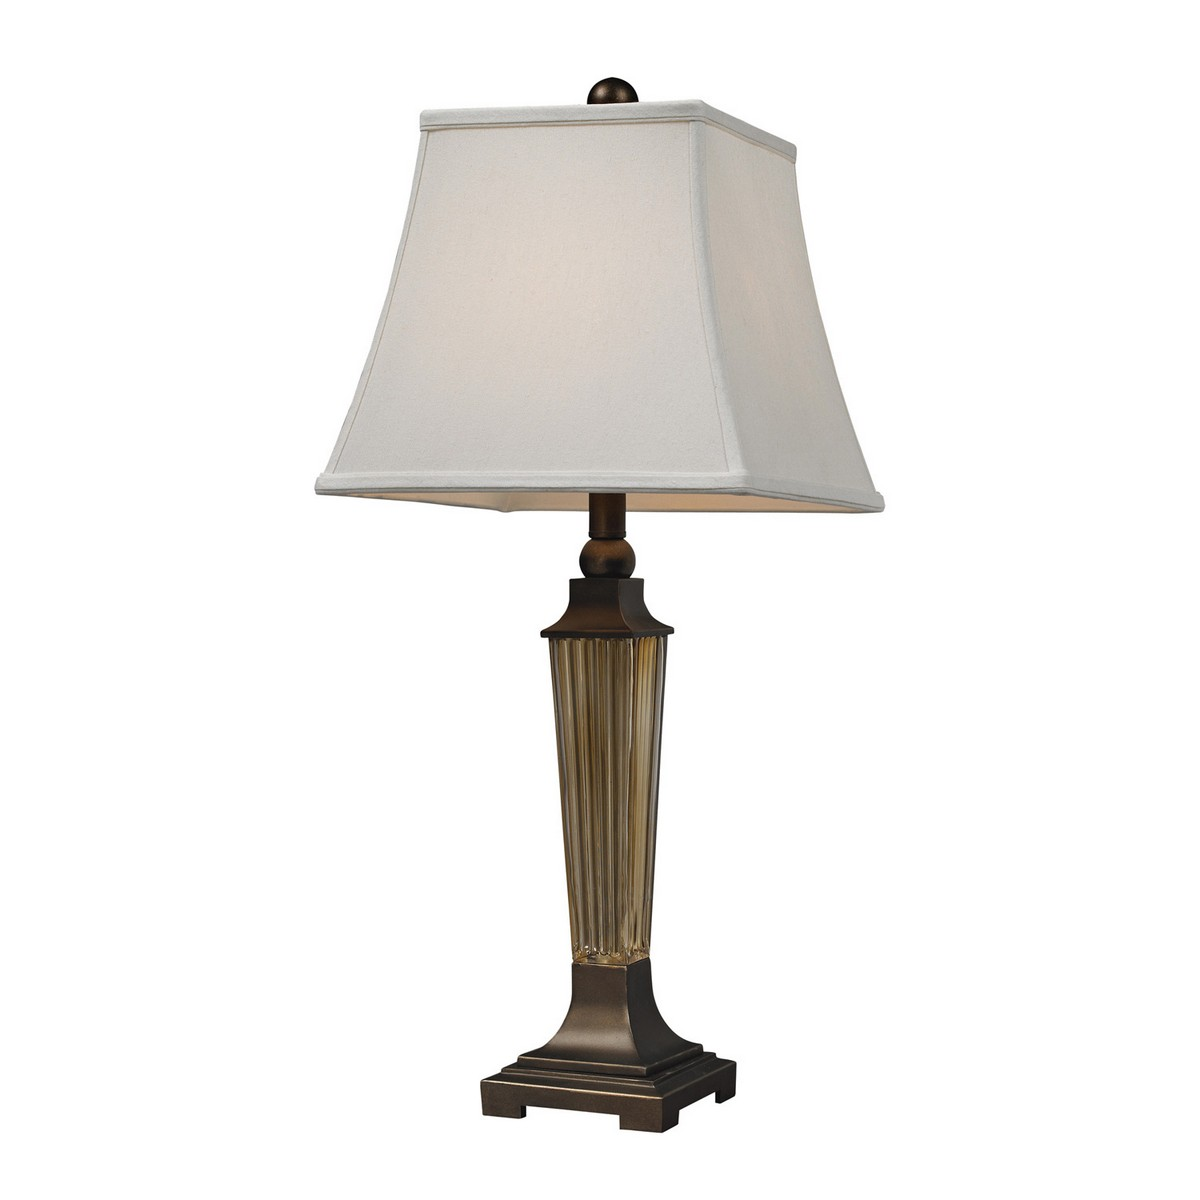 Elk Lighting D133 Table Lamp - Amber Smoked Glass/Bronze Base and Cap